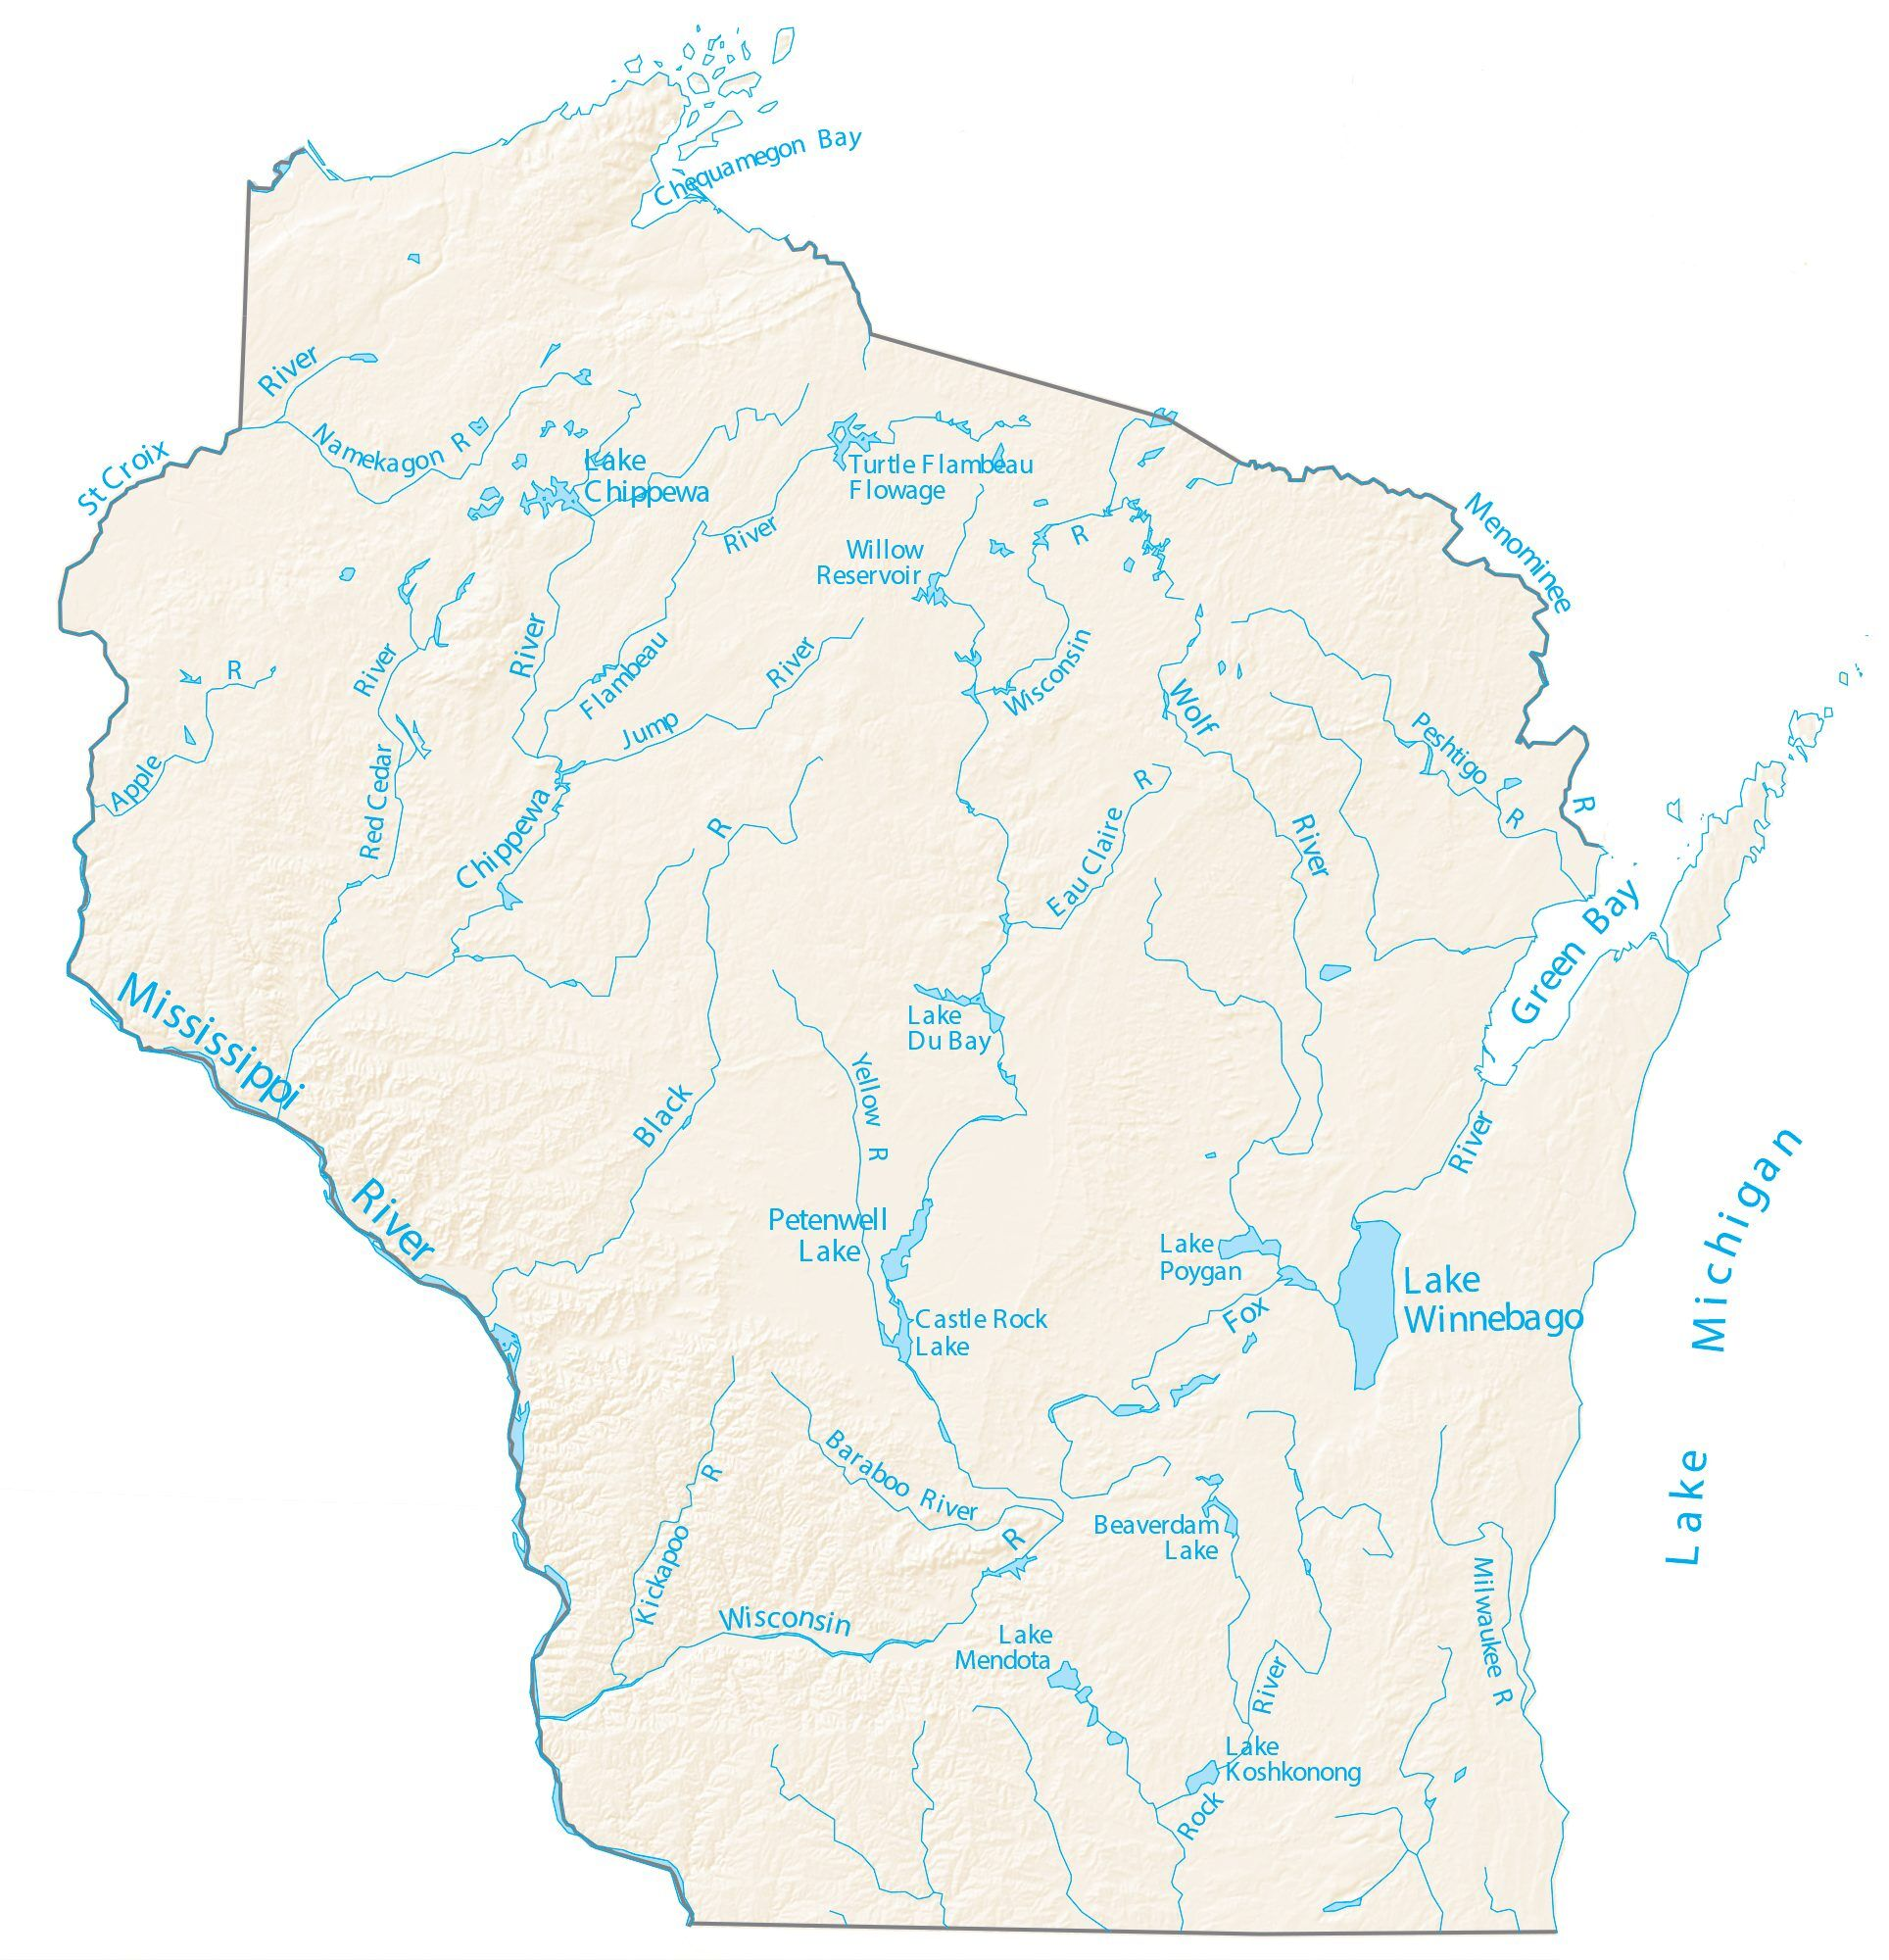 lakes in wisconsin map Wisconsin Lakes And Rivers Map Gis Geography lakes in wisconsin map